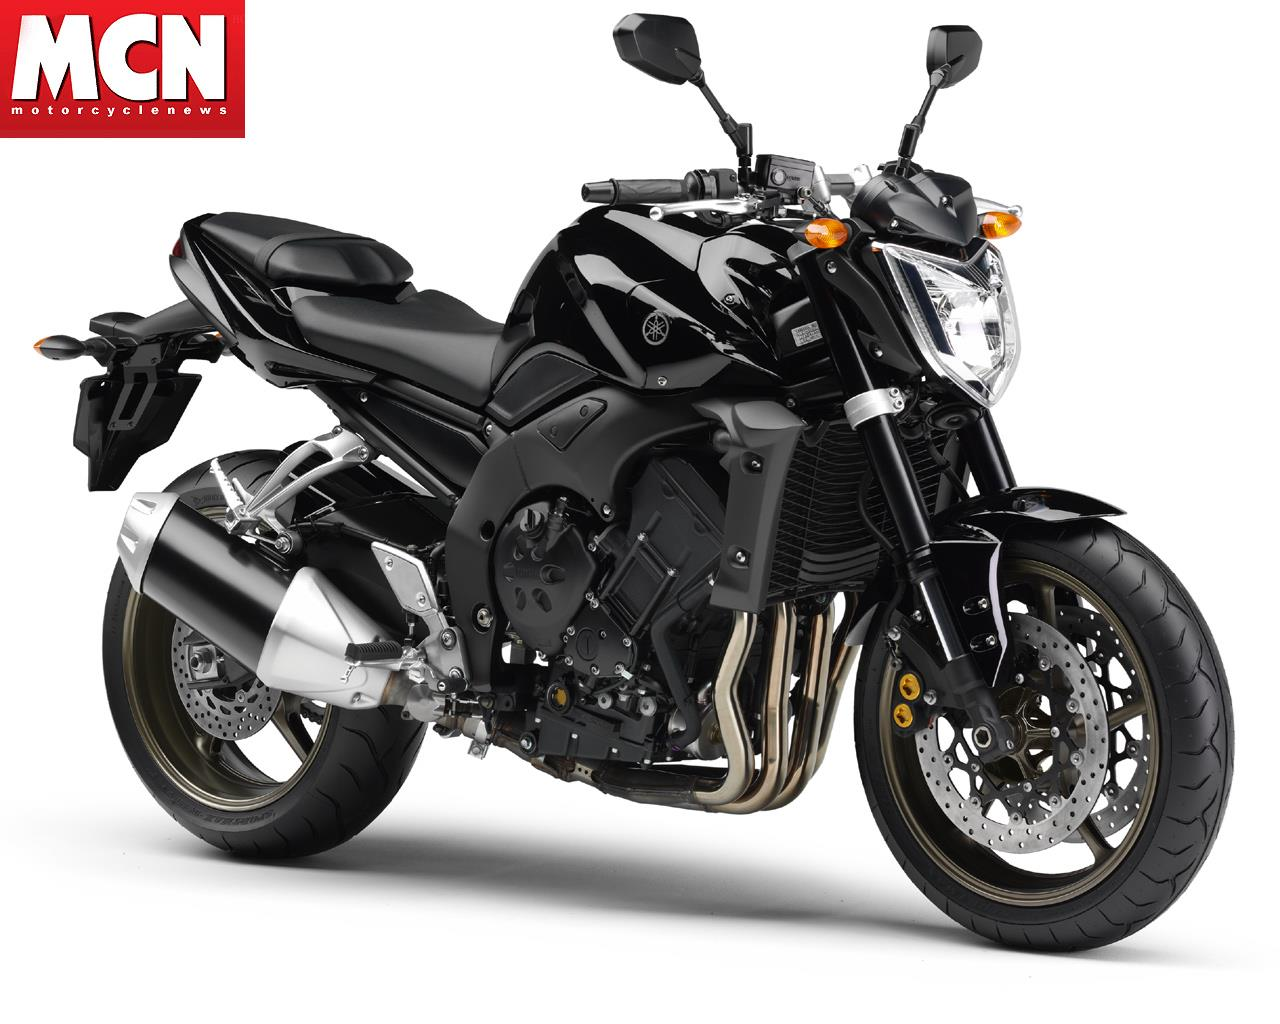 New colours for 2008 Yamaha FZ1 | MCN